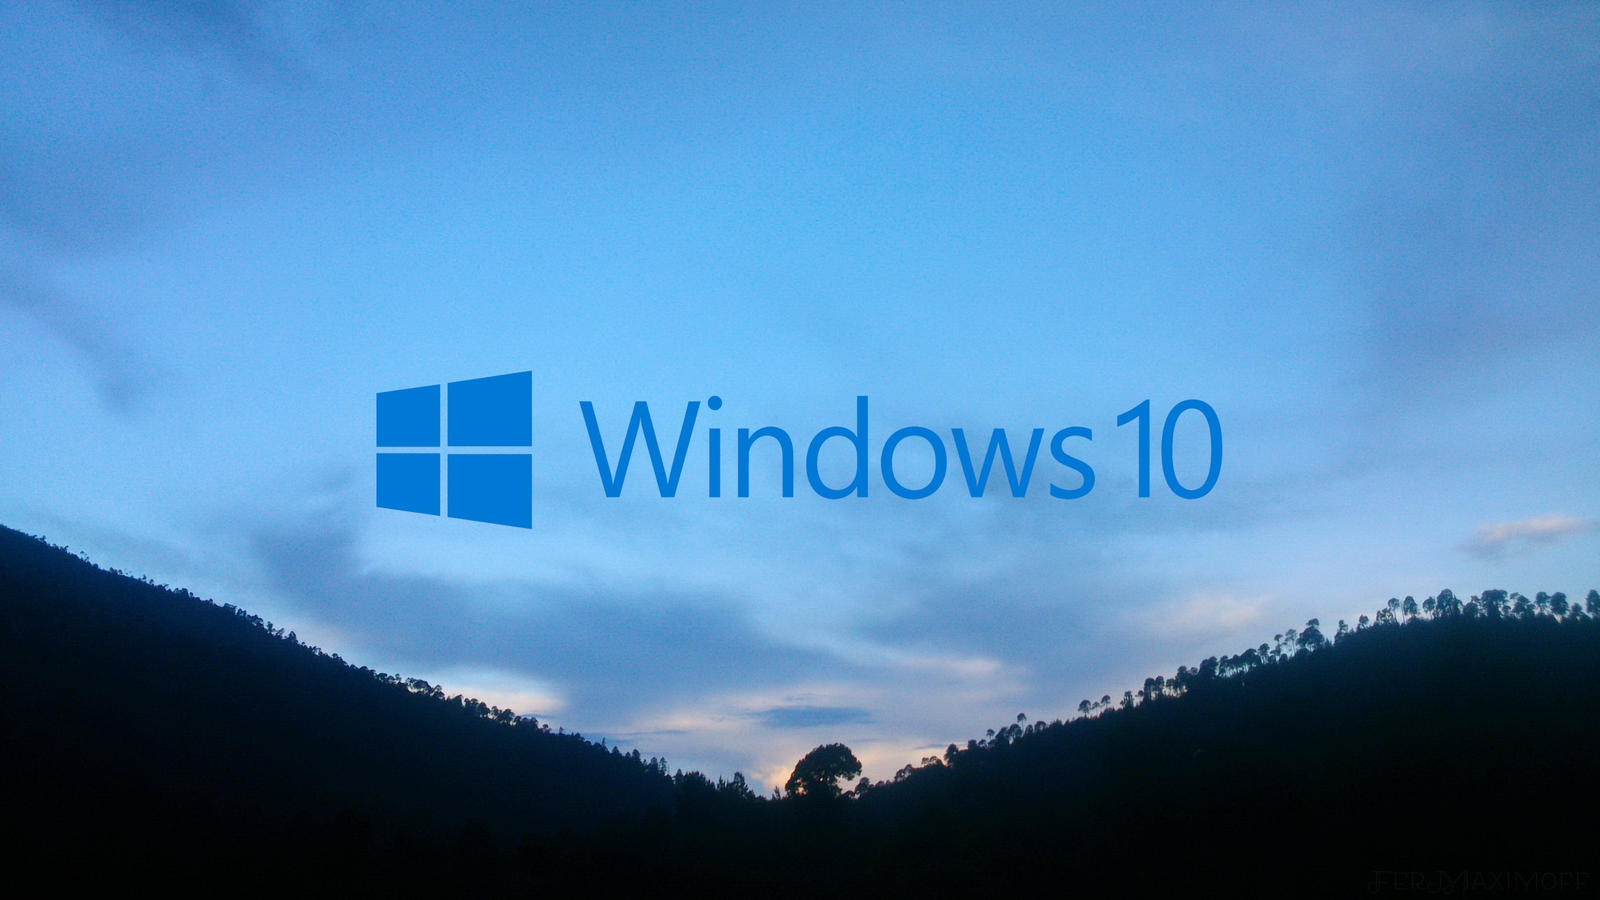 5 quick ways to speed up Windows 10. 1